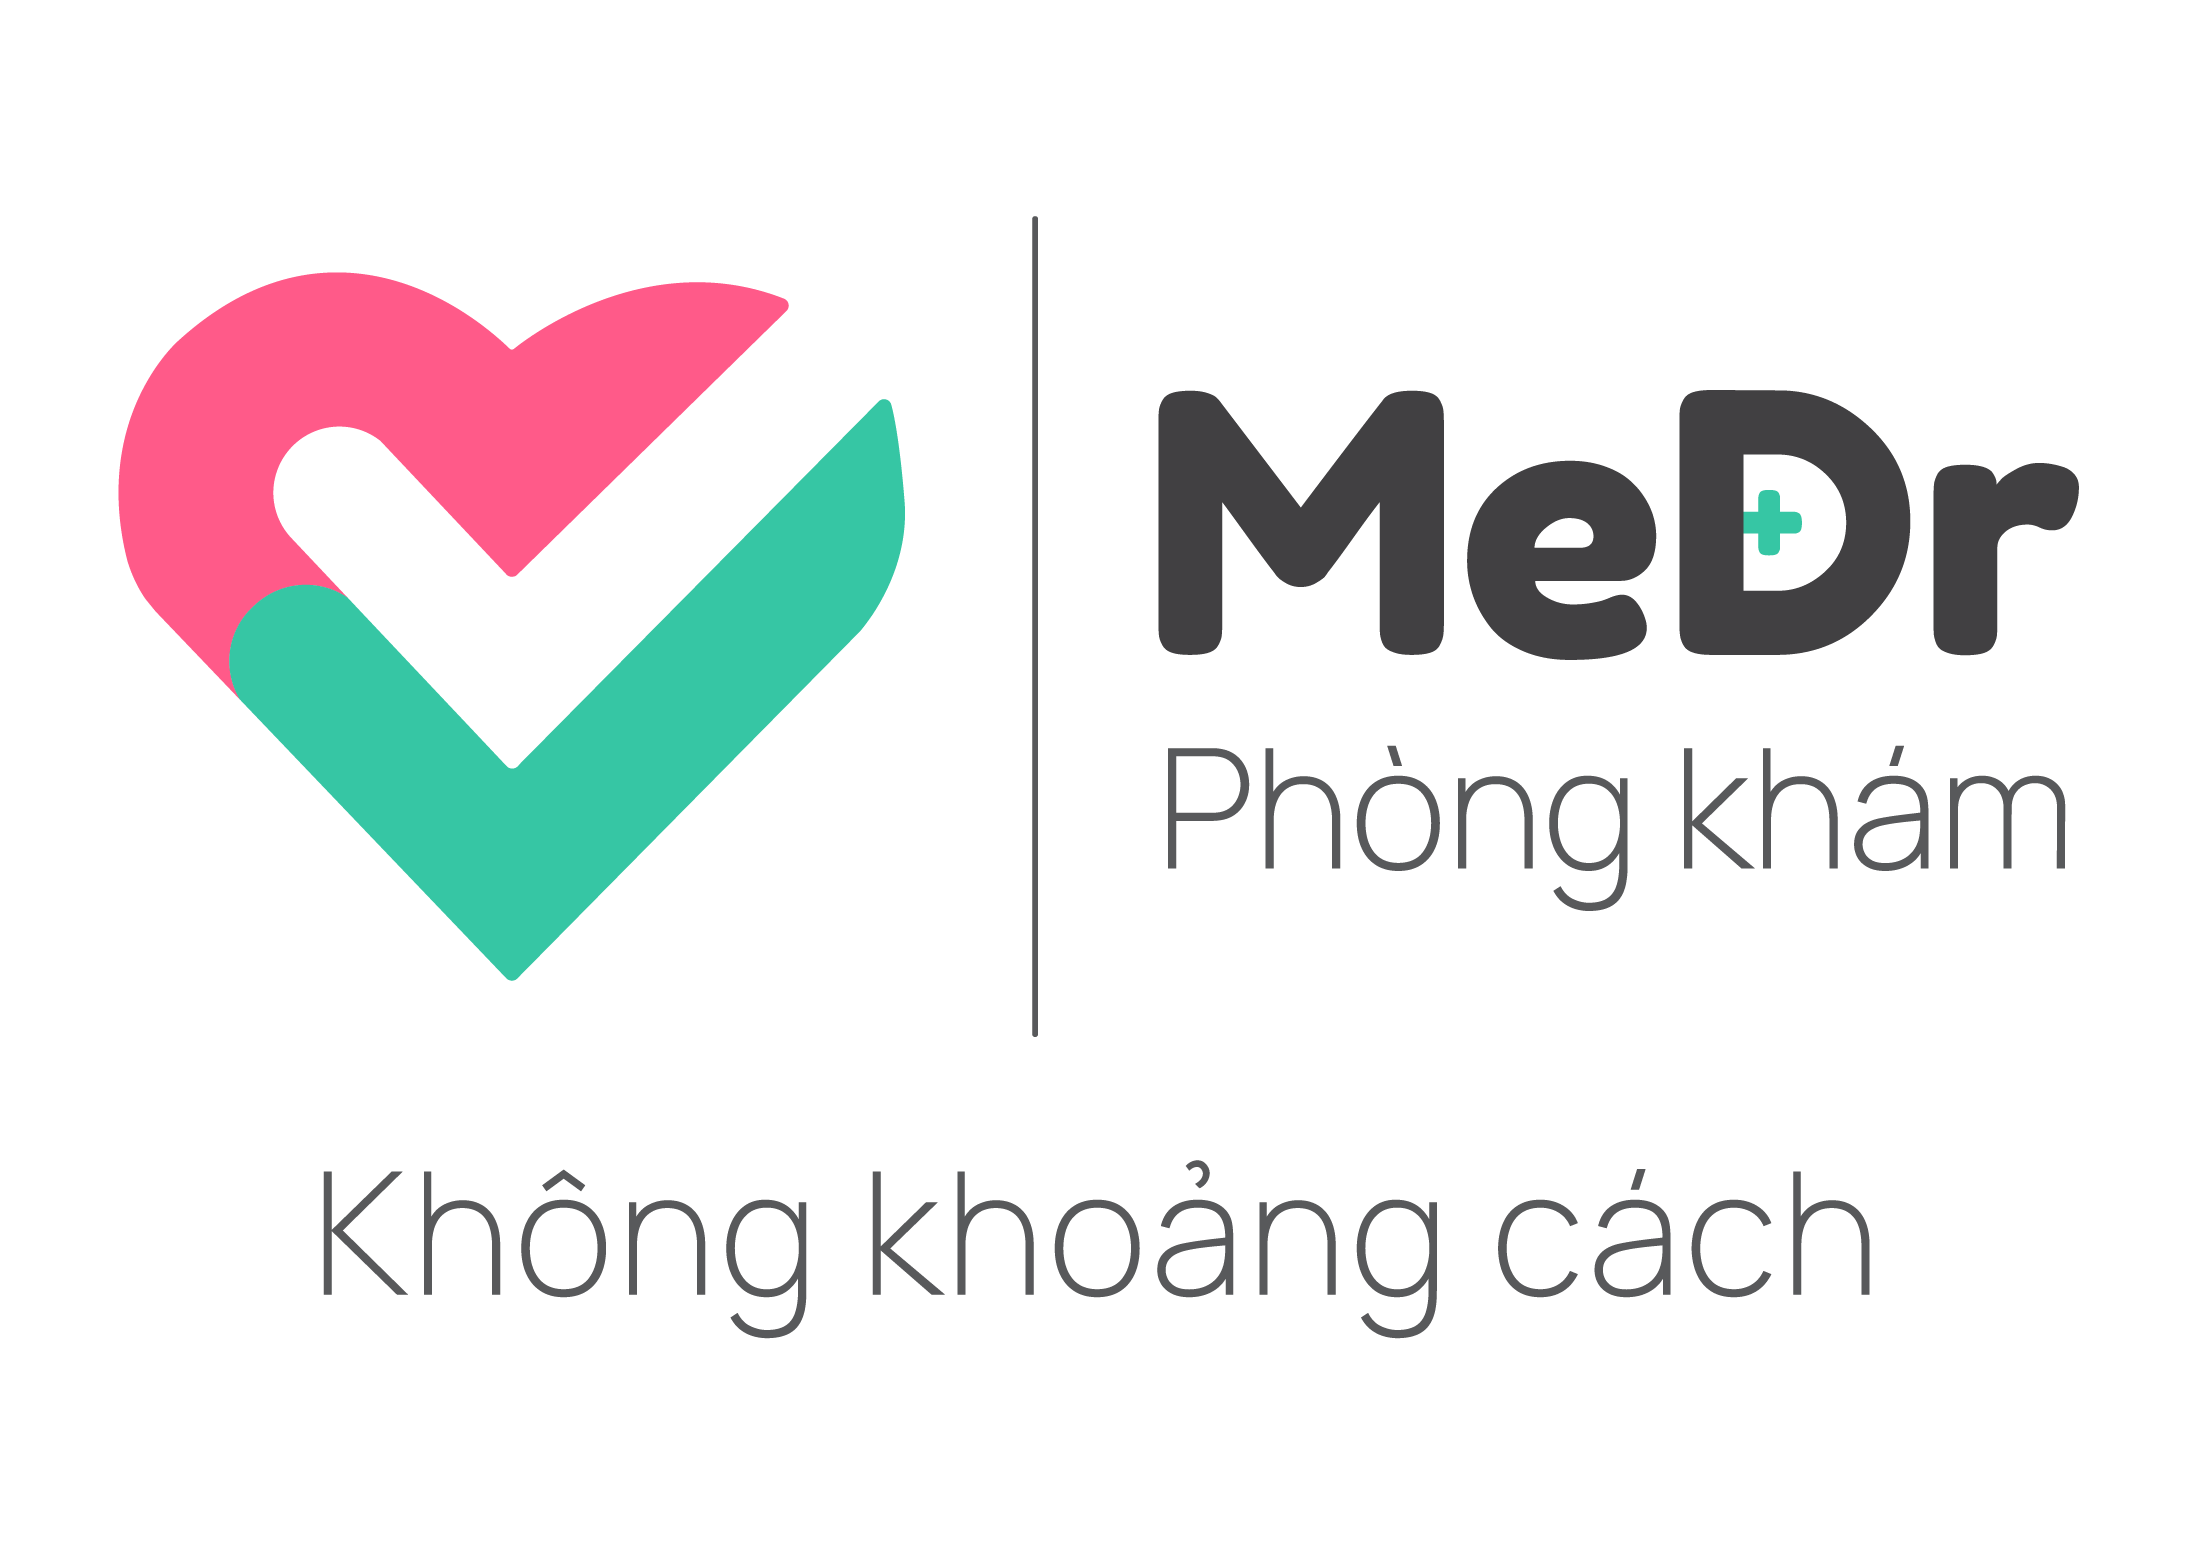 cong-ty-co-phan-cong-nghe-y-te-medr